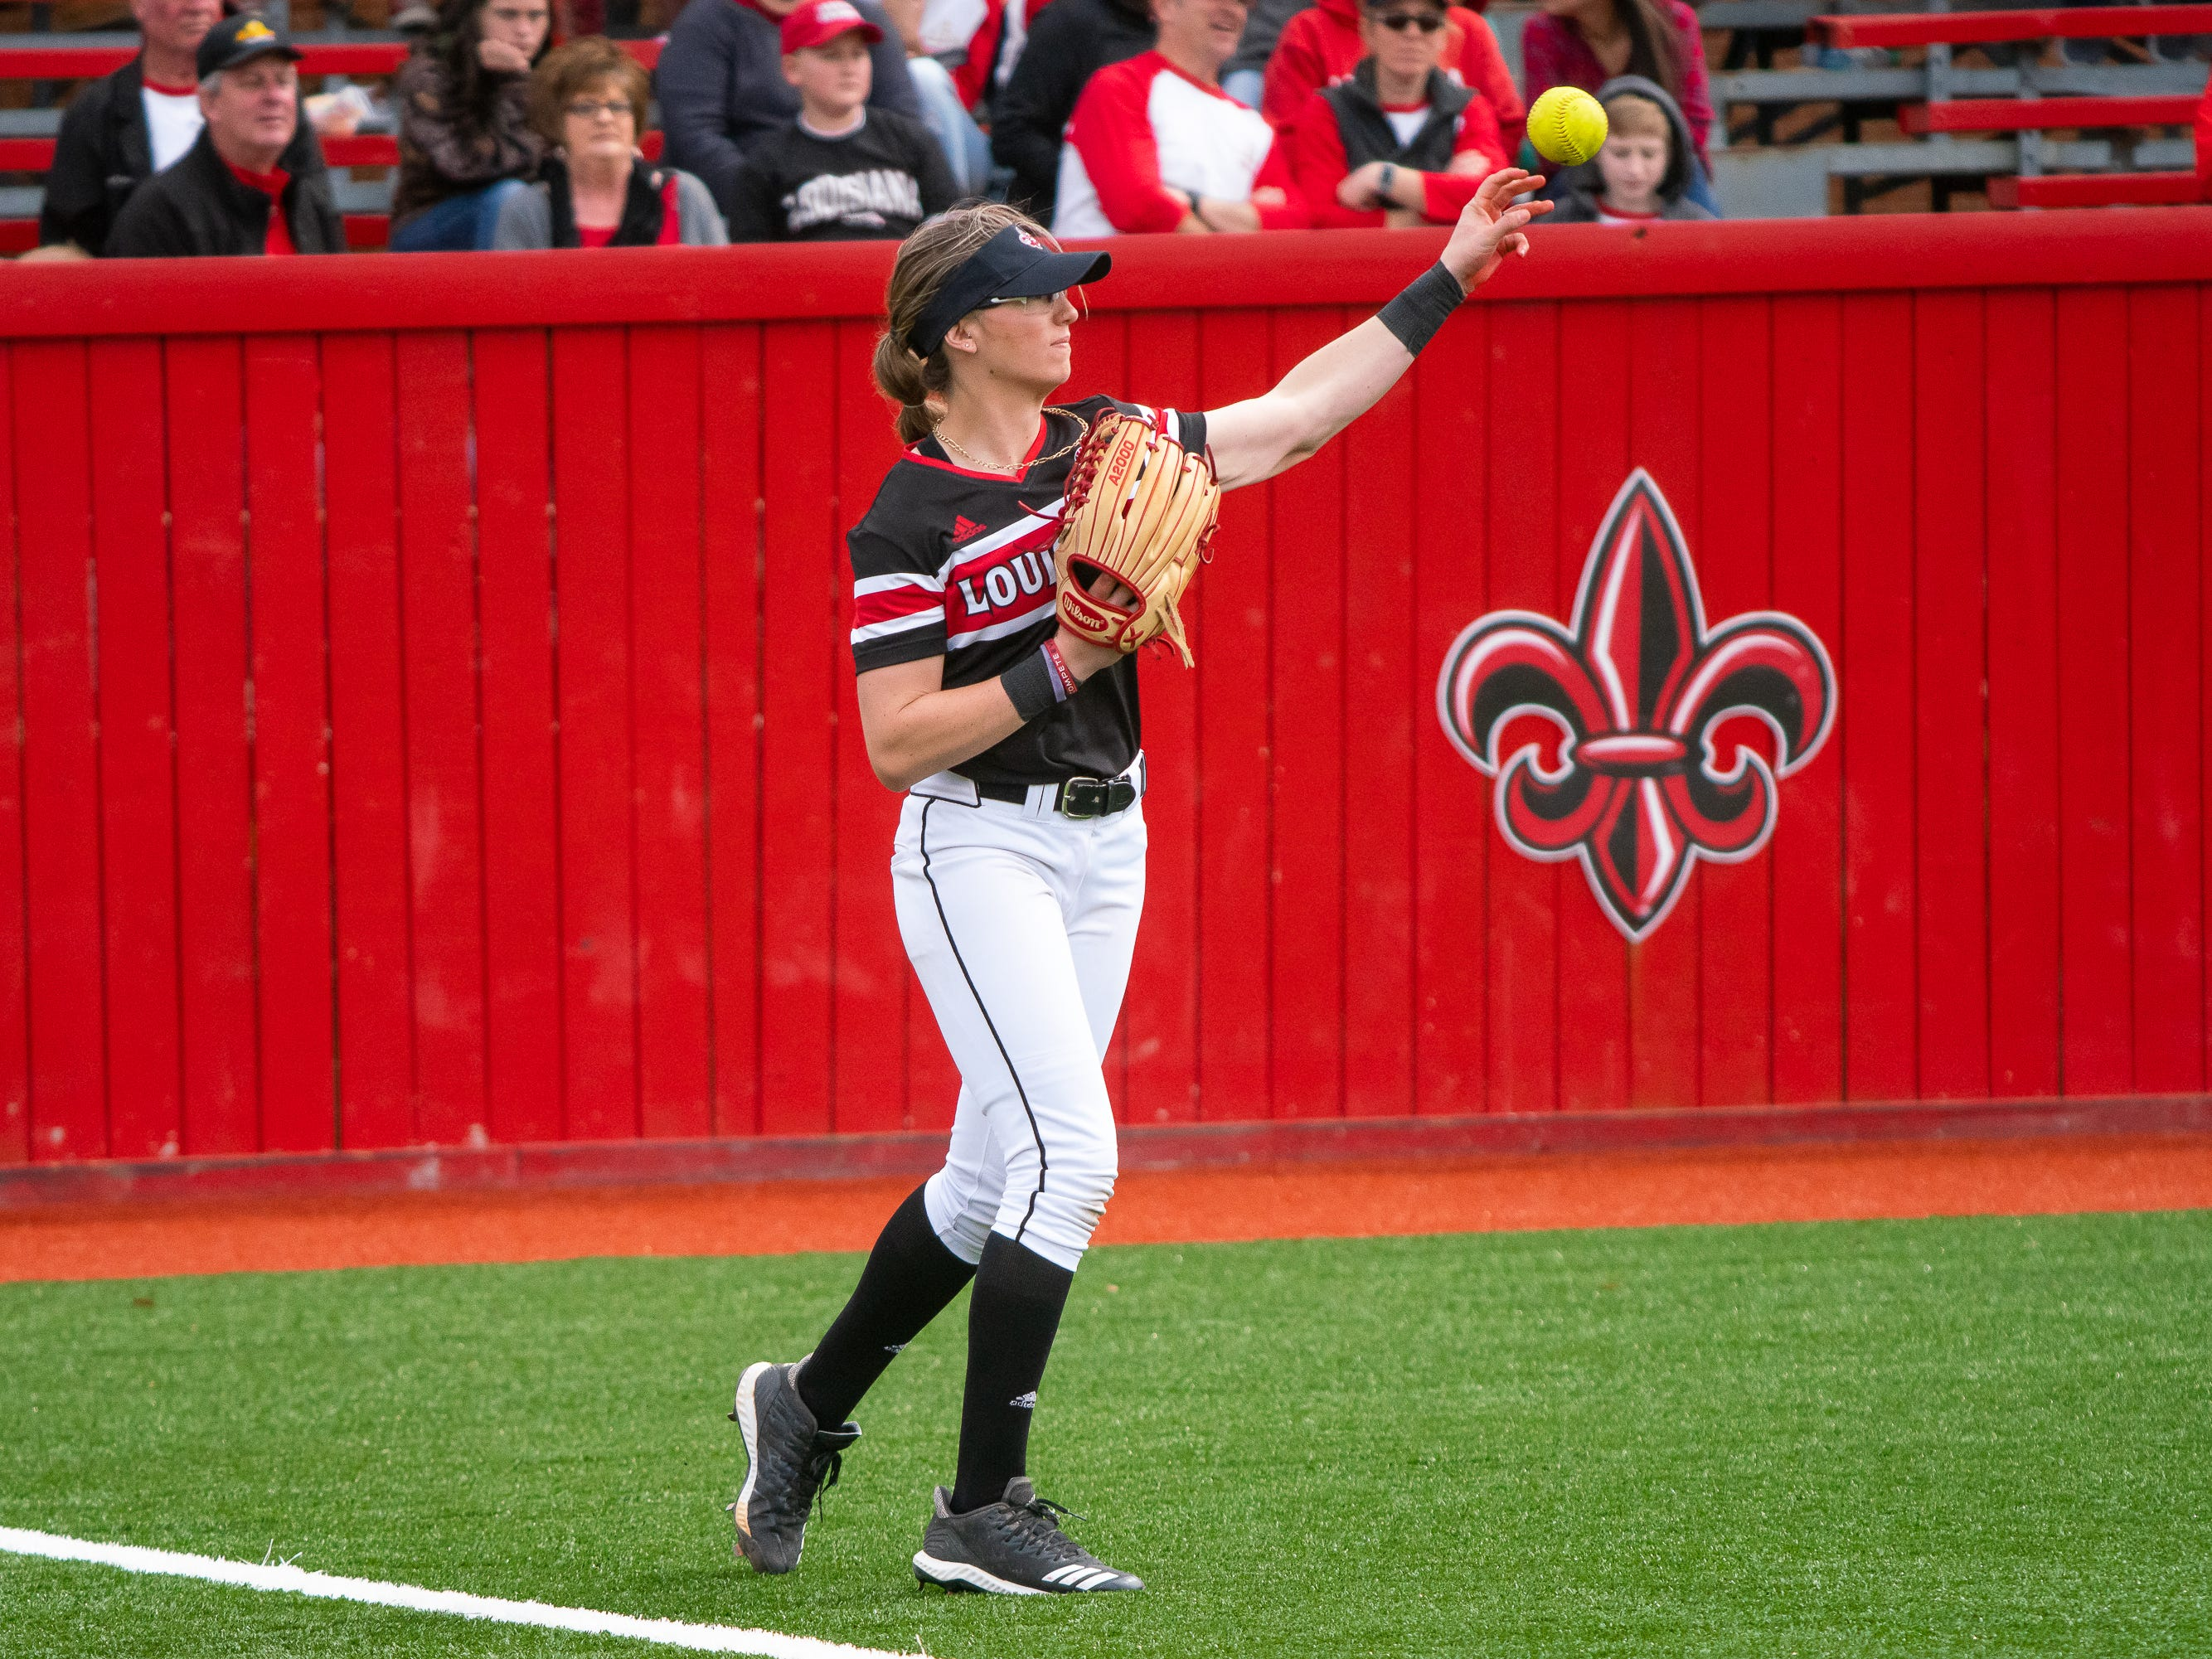 UL's Sarah Hudek throws the ball from the outfield as the Ragin' Cajuns take on the Troy Trojans at Yvette Girouard Field at Lamson Park on Saturday, March 16, 2019.